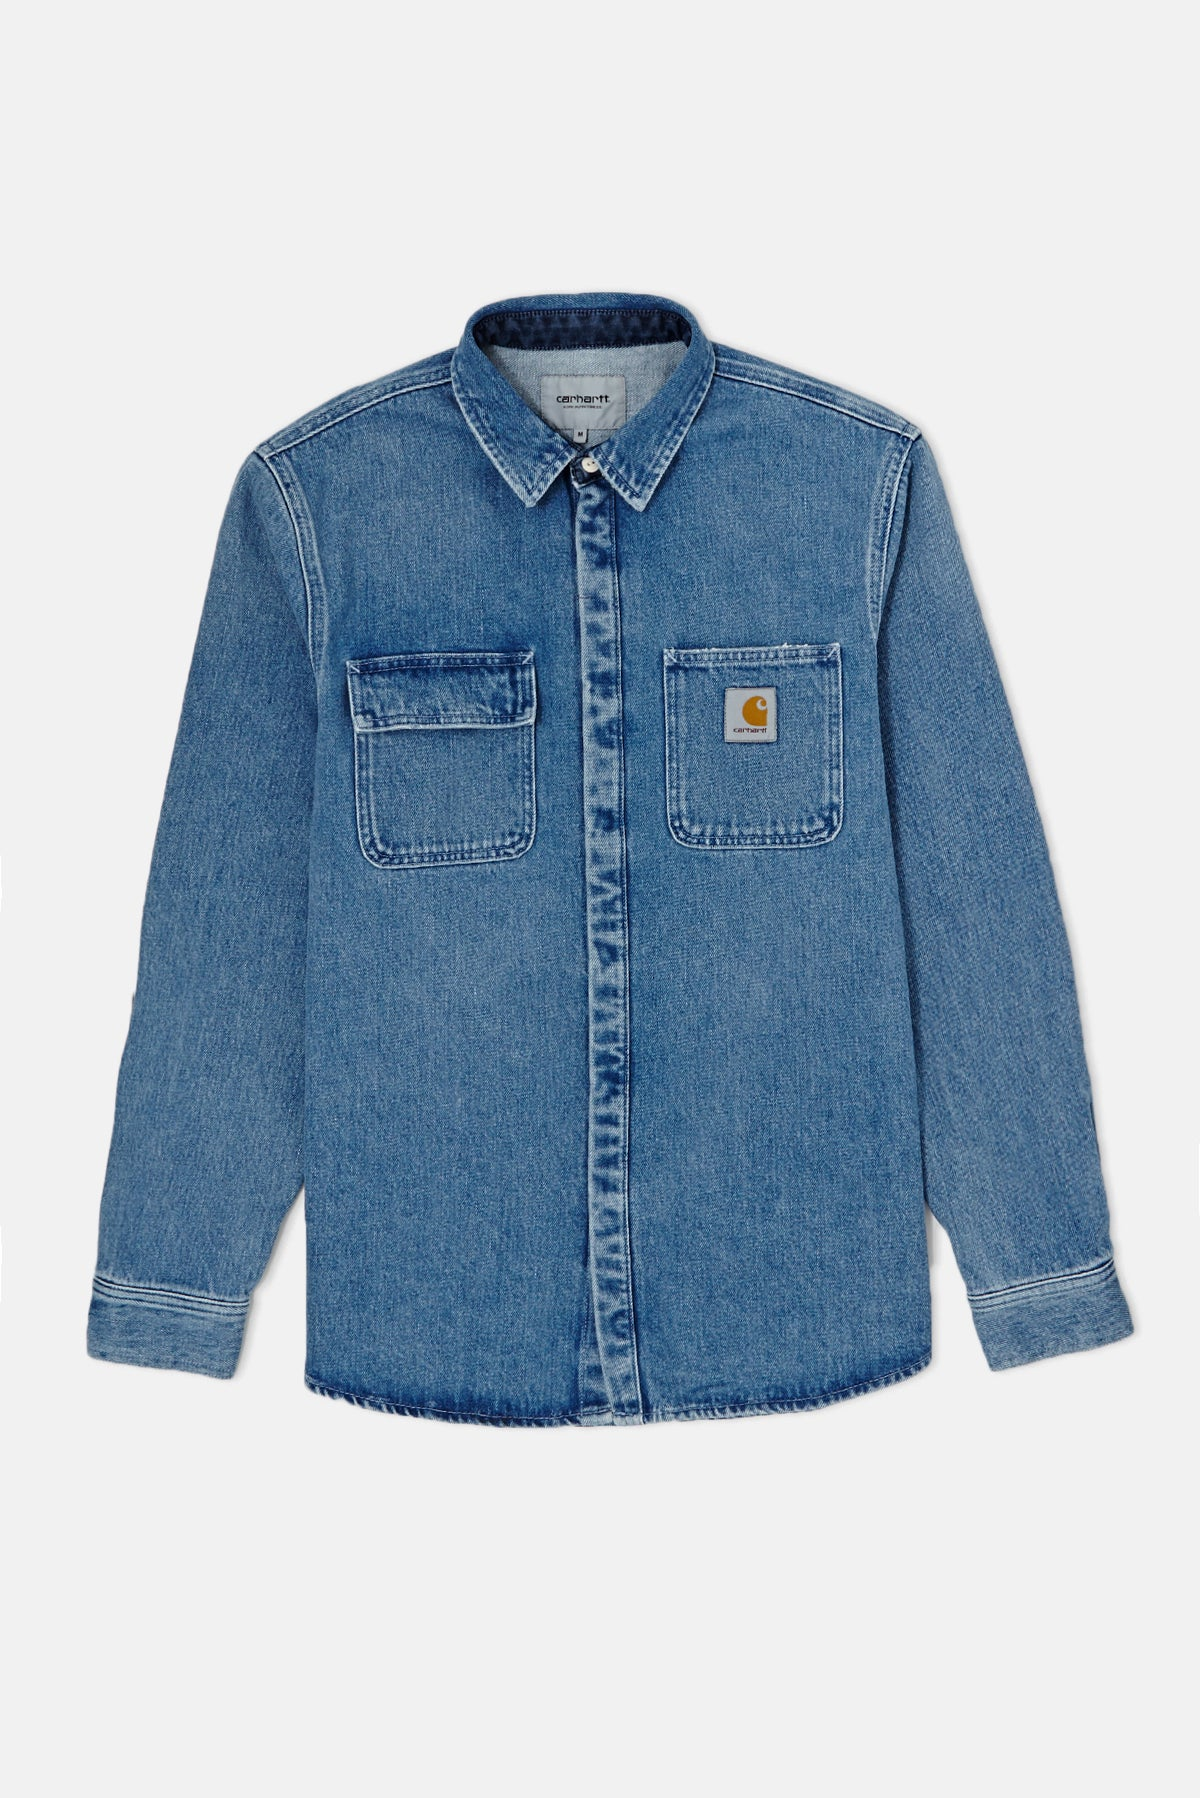 bc491d3ed1 Carhartt Salinac Jac L S Shirt available from Priory